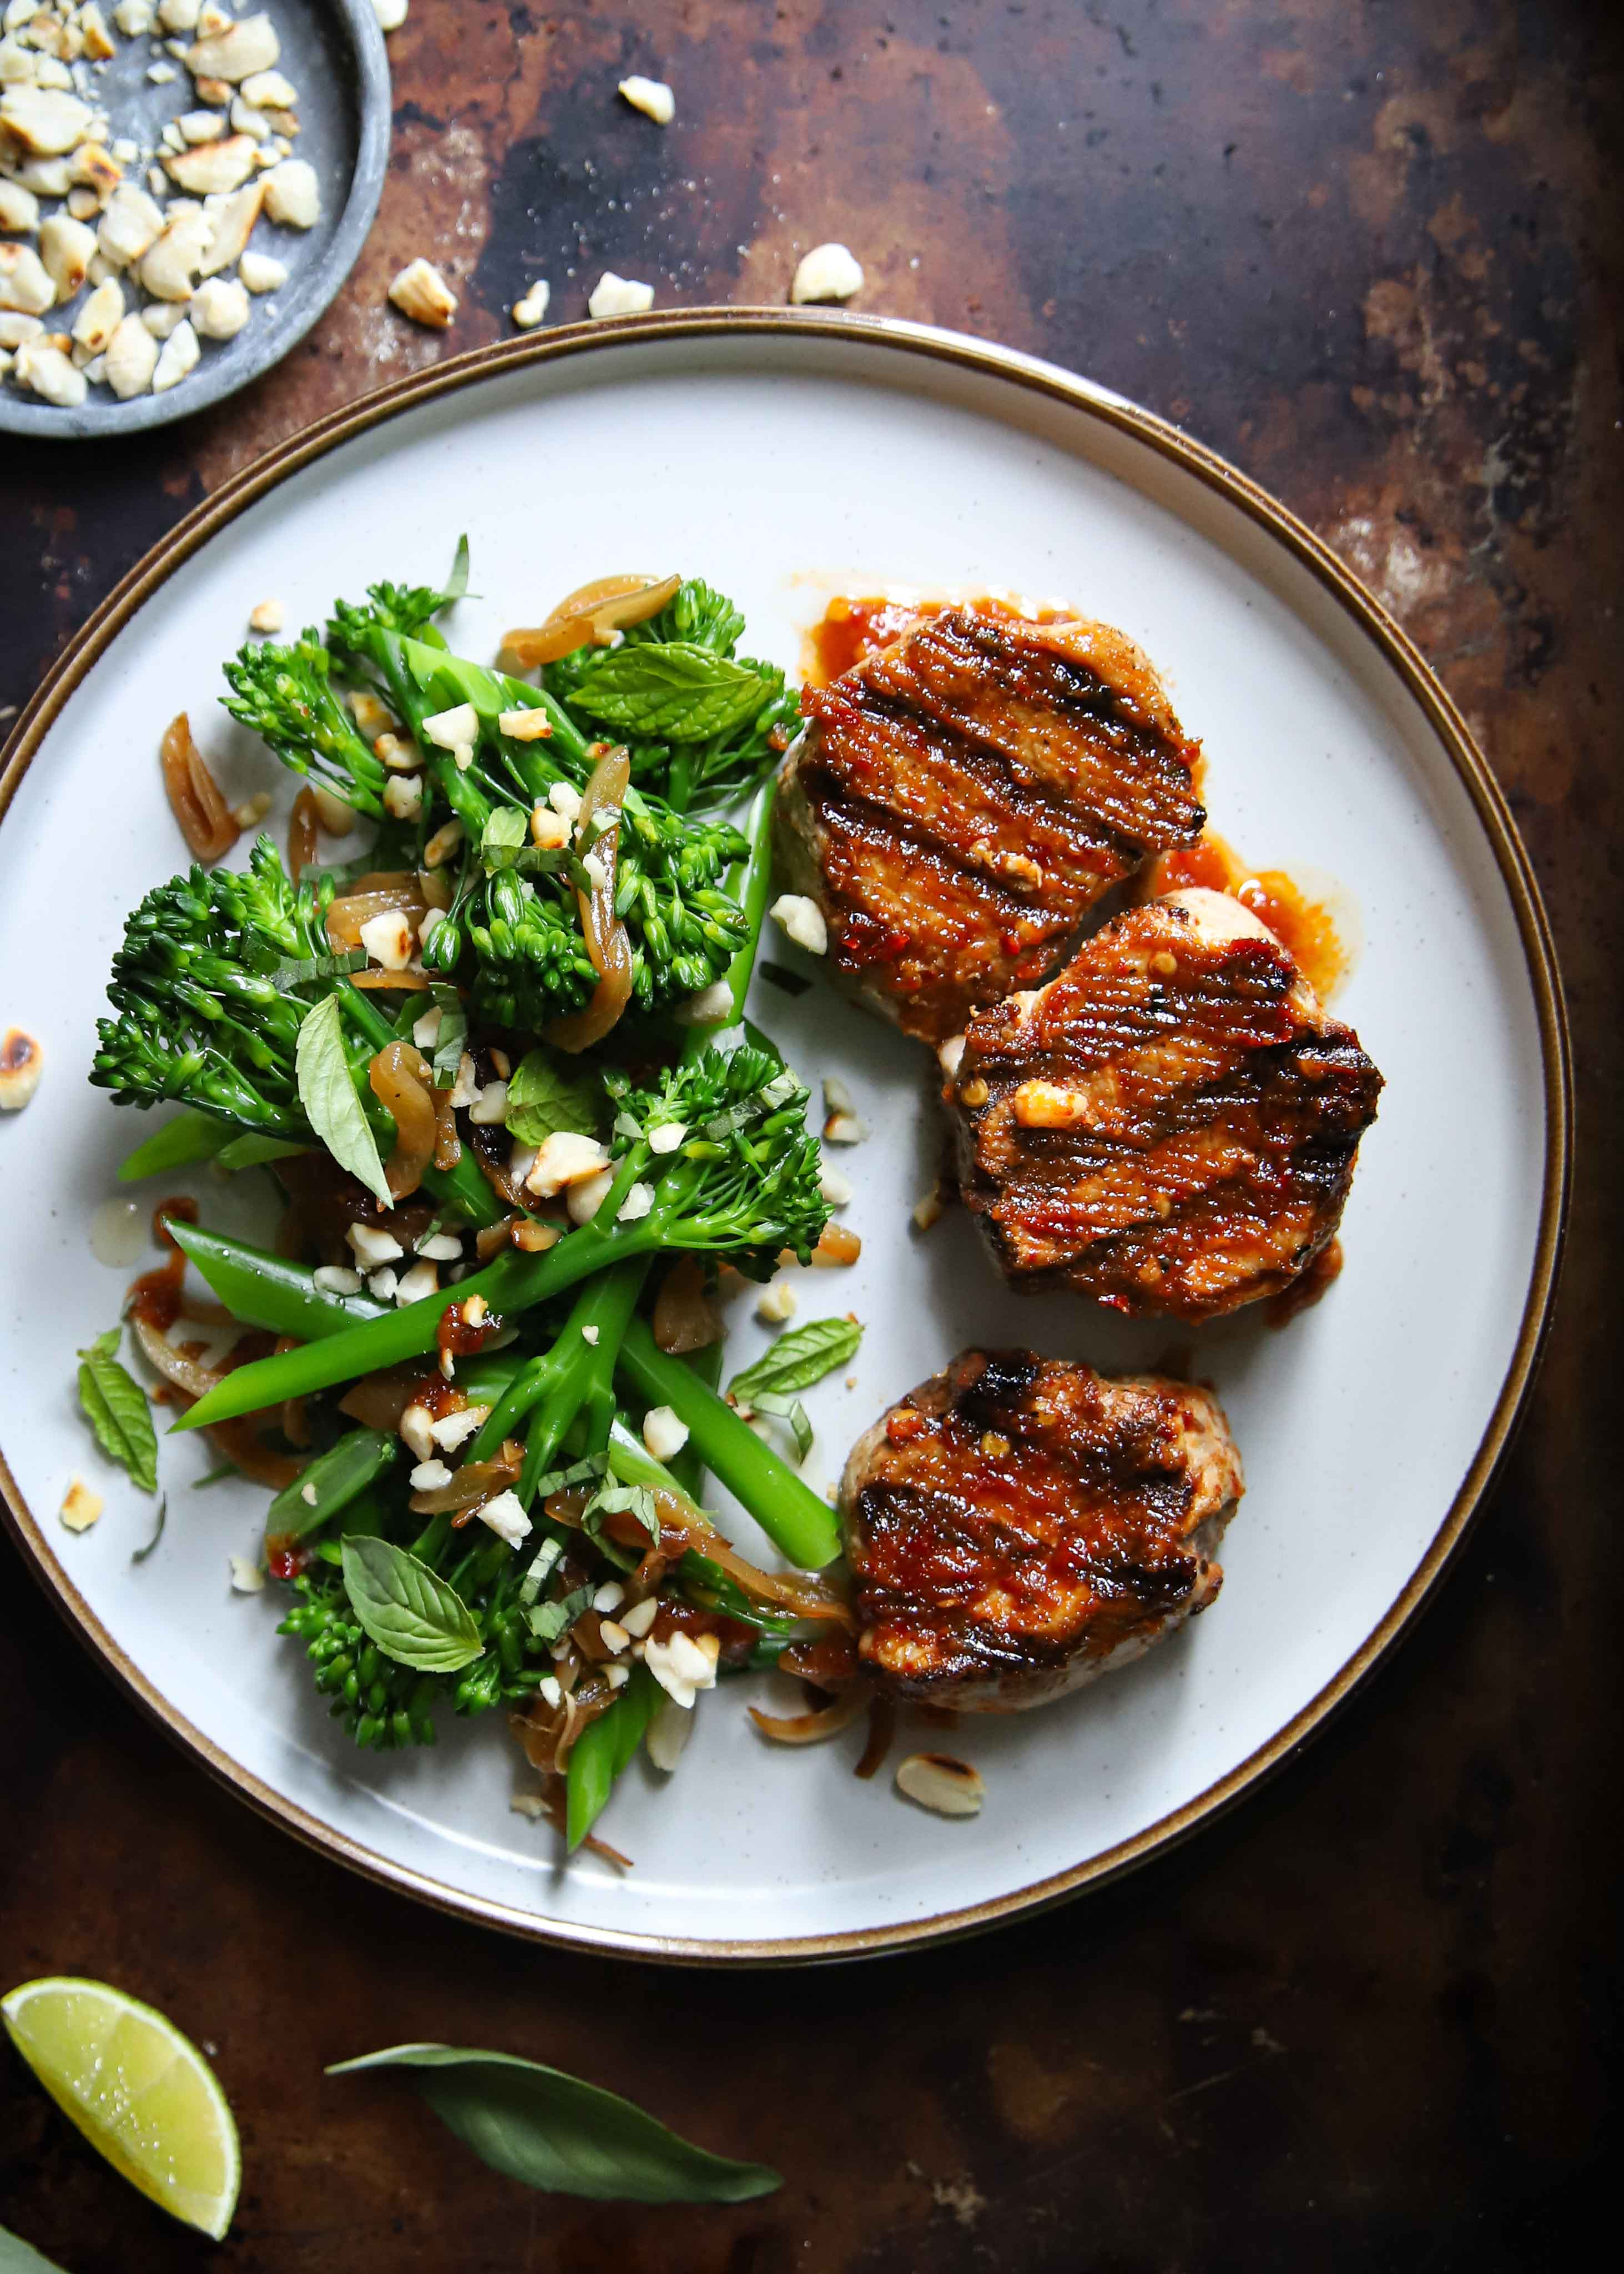 Juicy sambal pork medallions served with an Asian style long stem broccoli side…This Indonesian sambal recipe is easy, healthy & so so good!